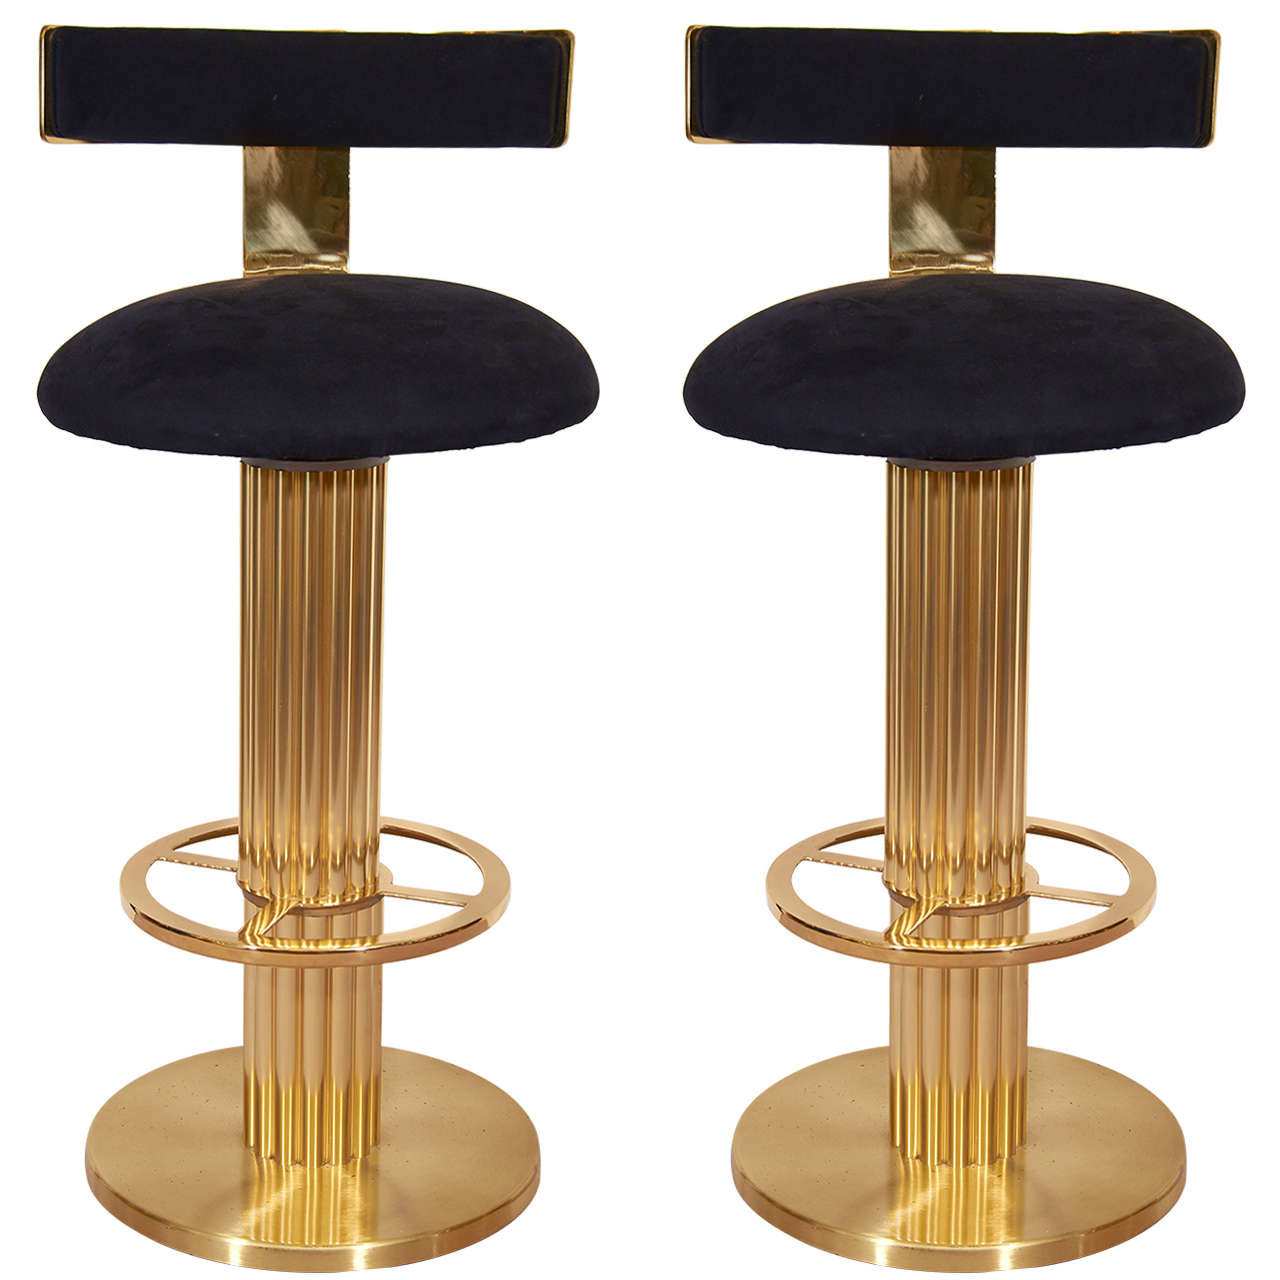 Pair Of Mid Century Solid Brass Bar Stools At 1stdibs